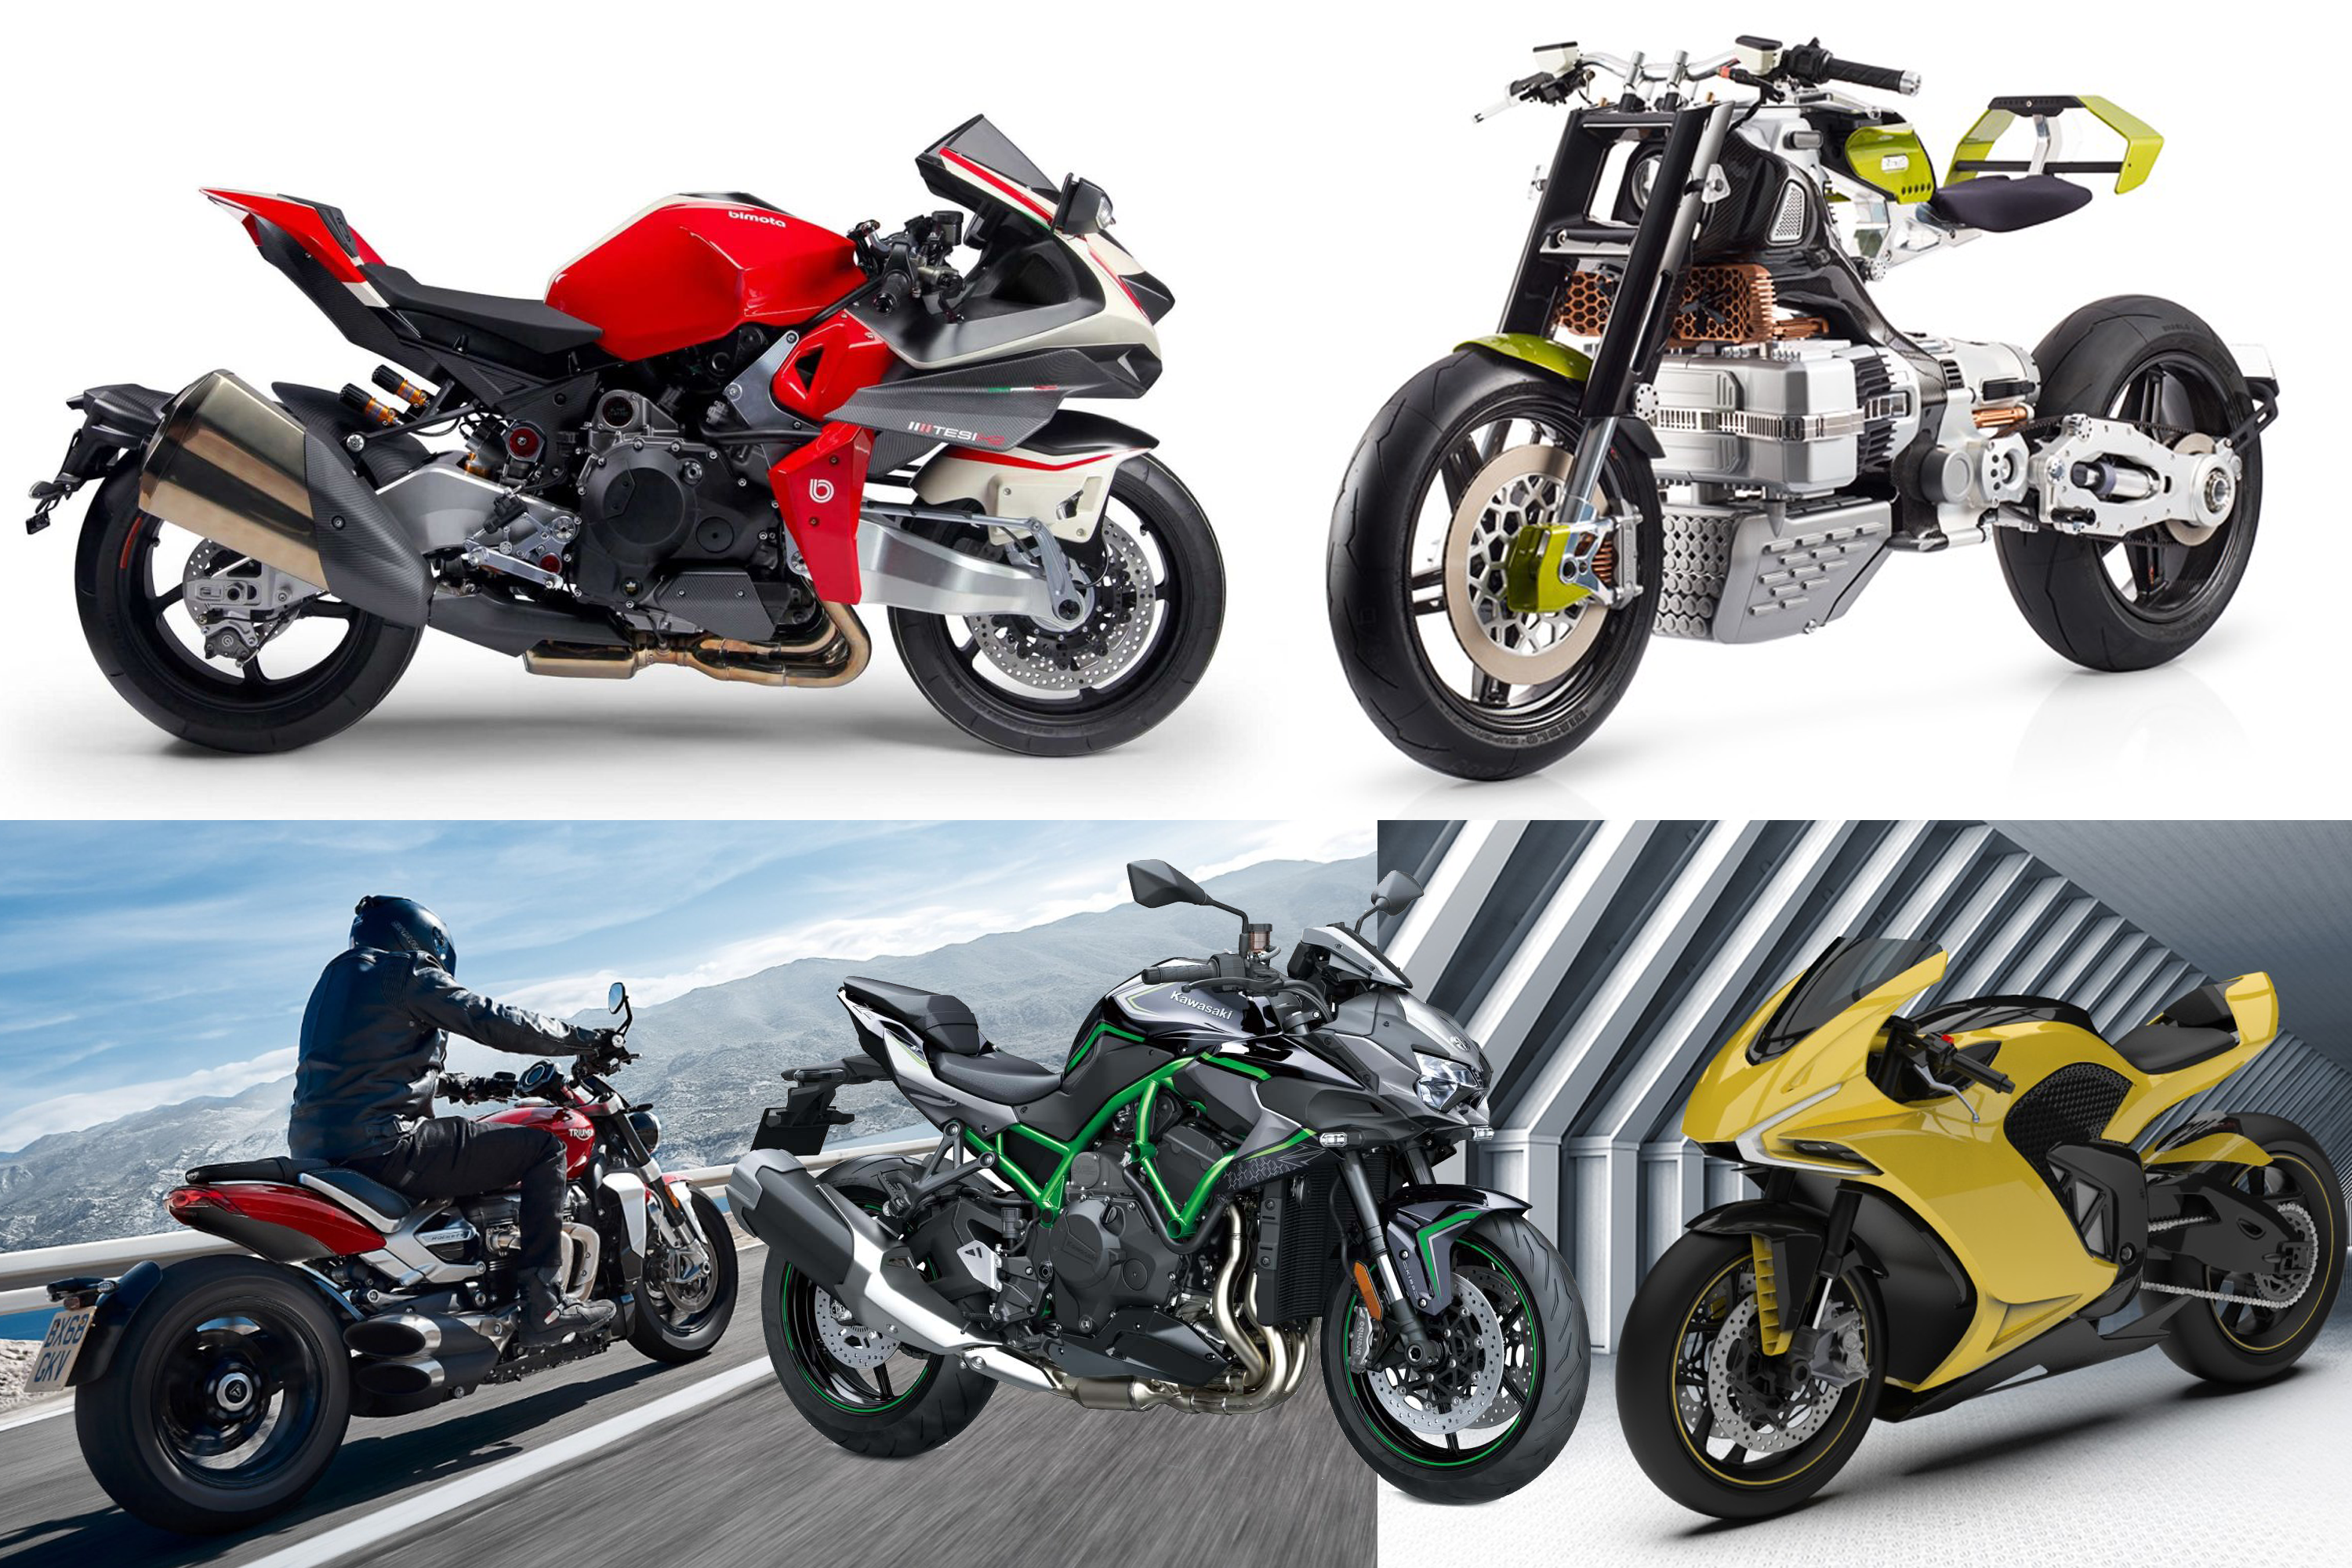 The most interesting and desirable motorcycles of 2019